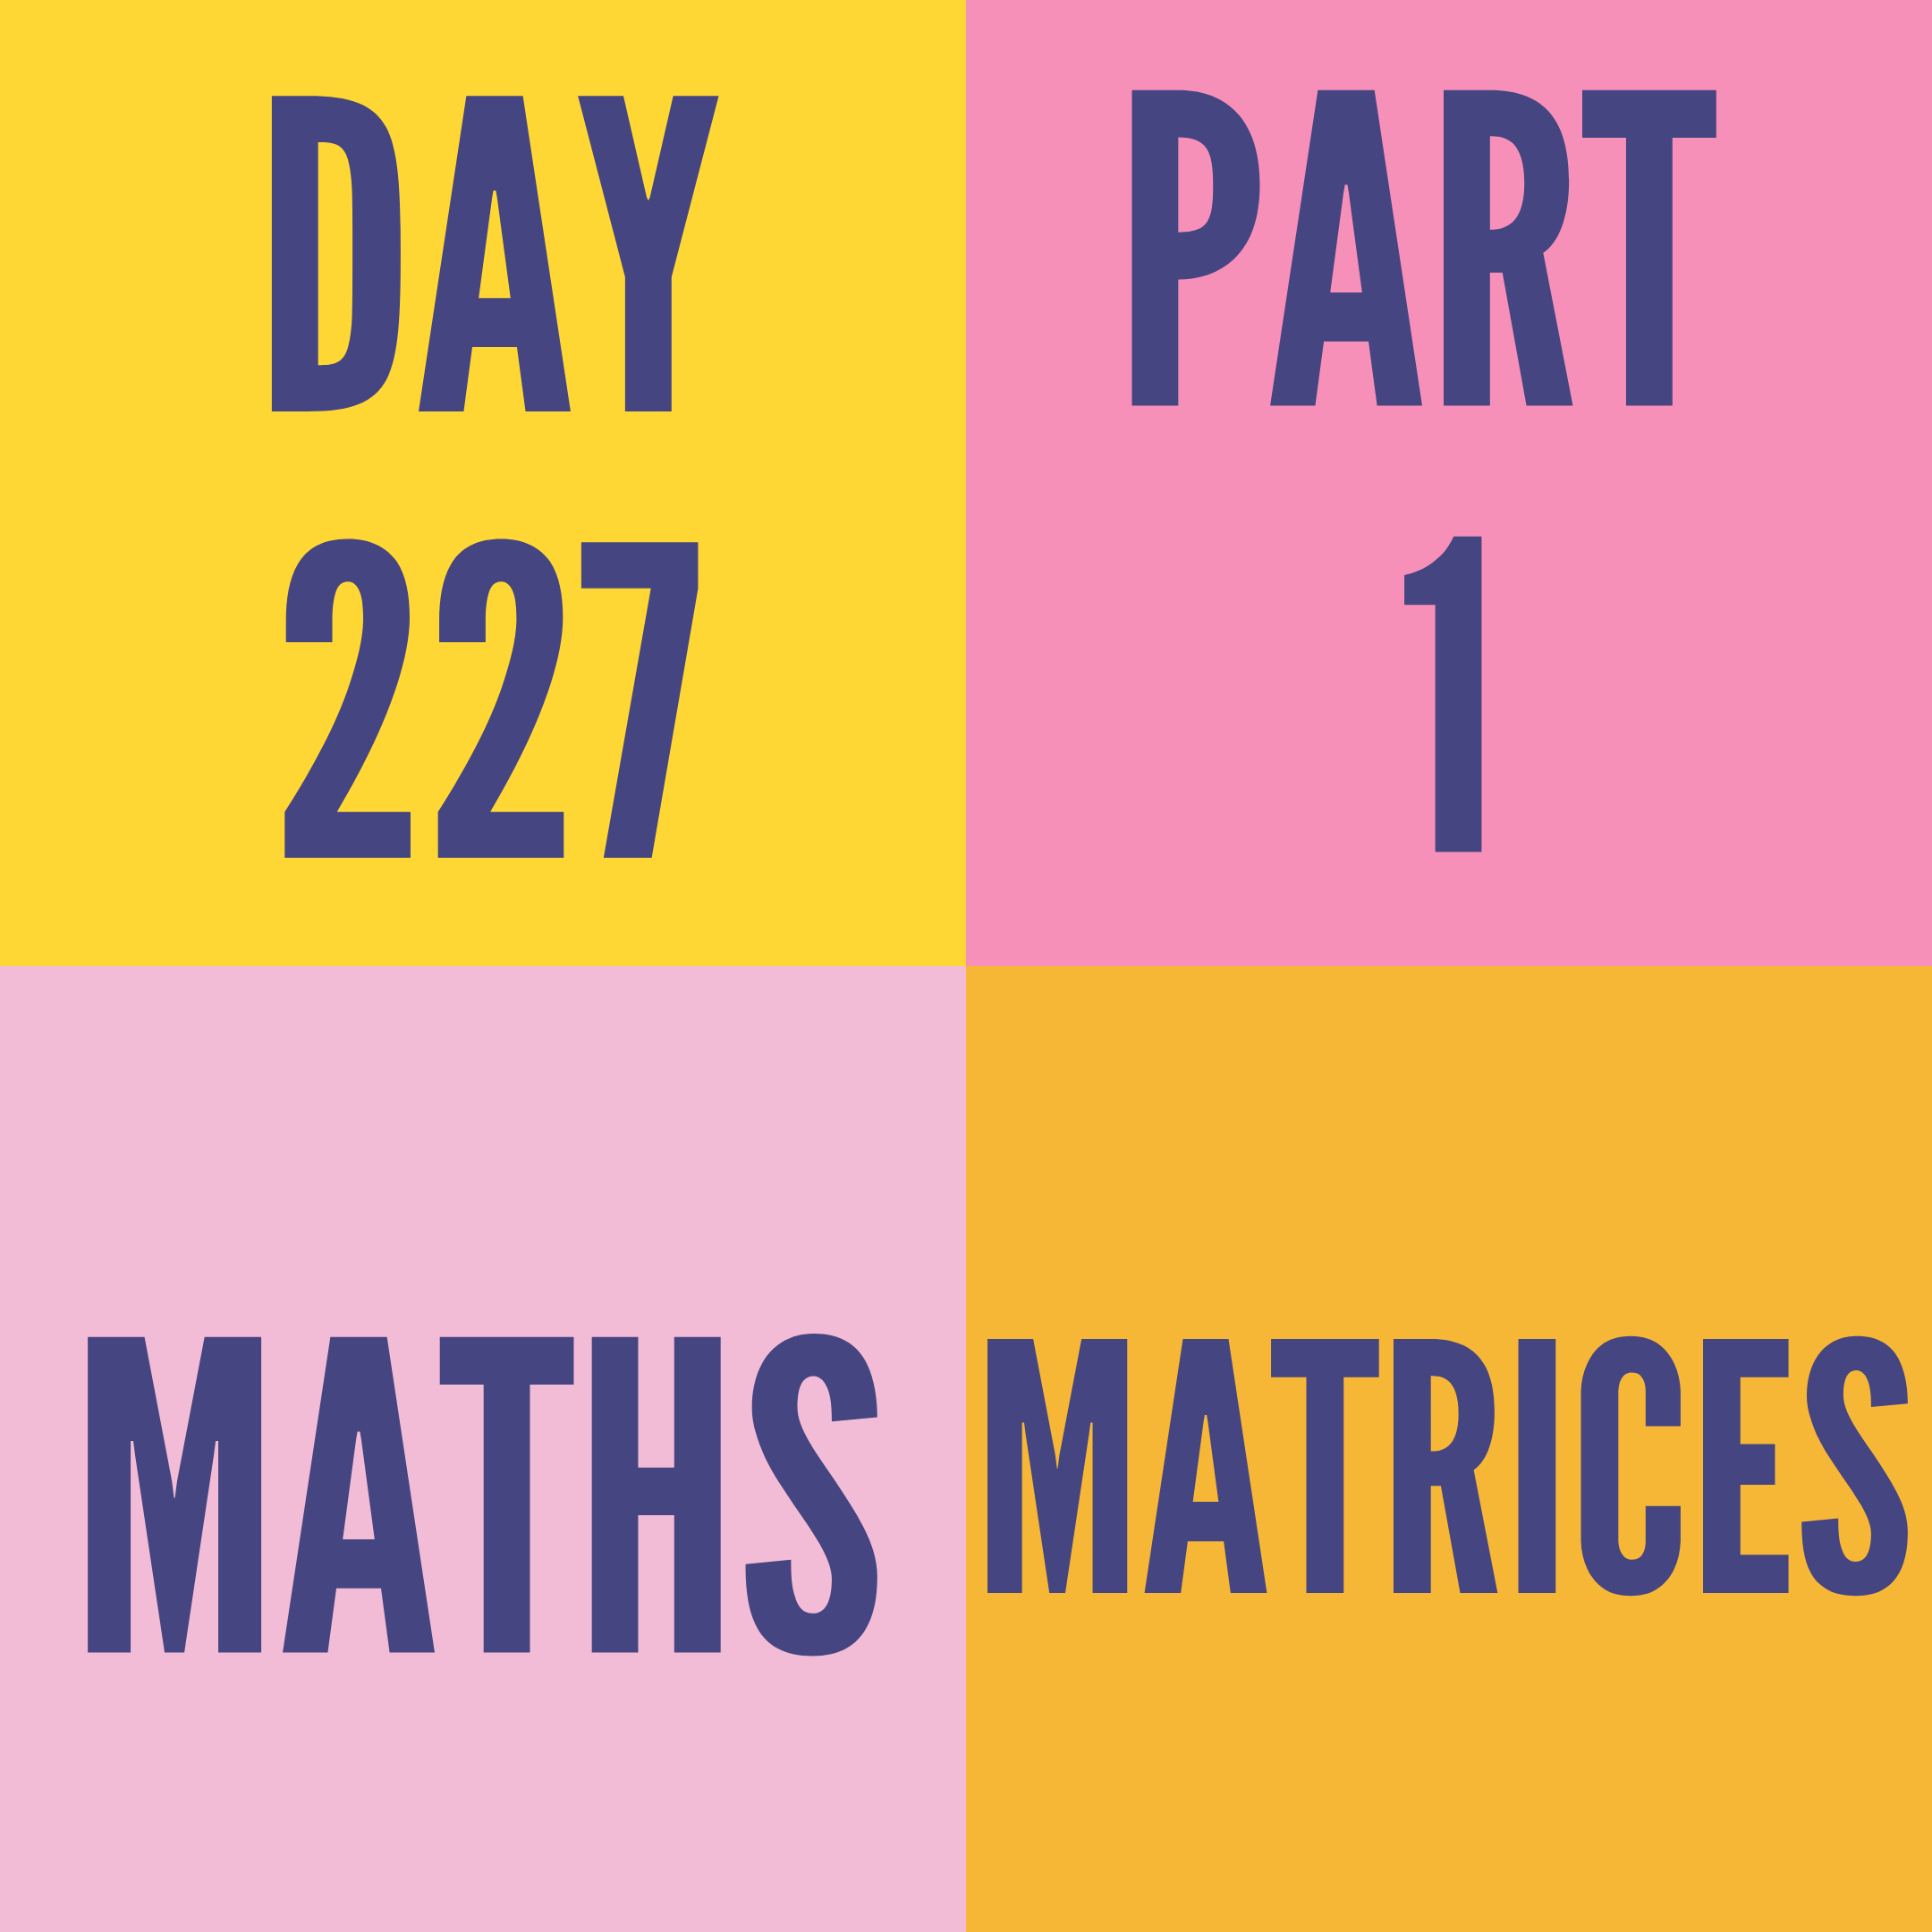 DAY-227 PART-1 MATRICES